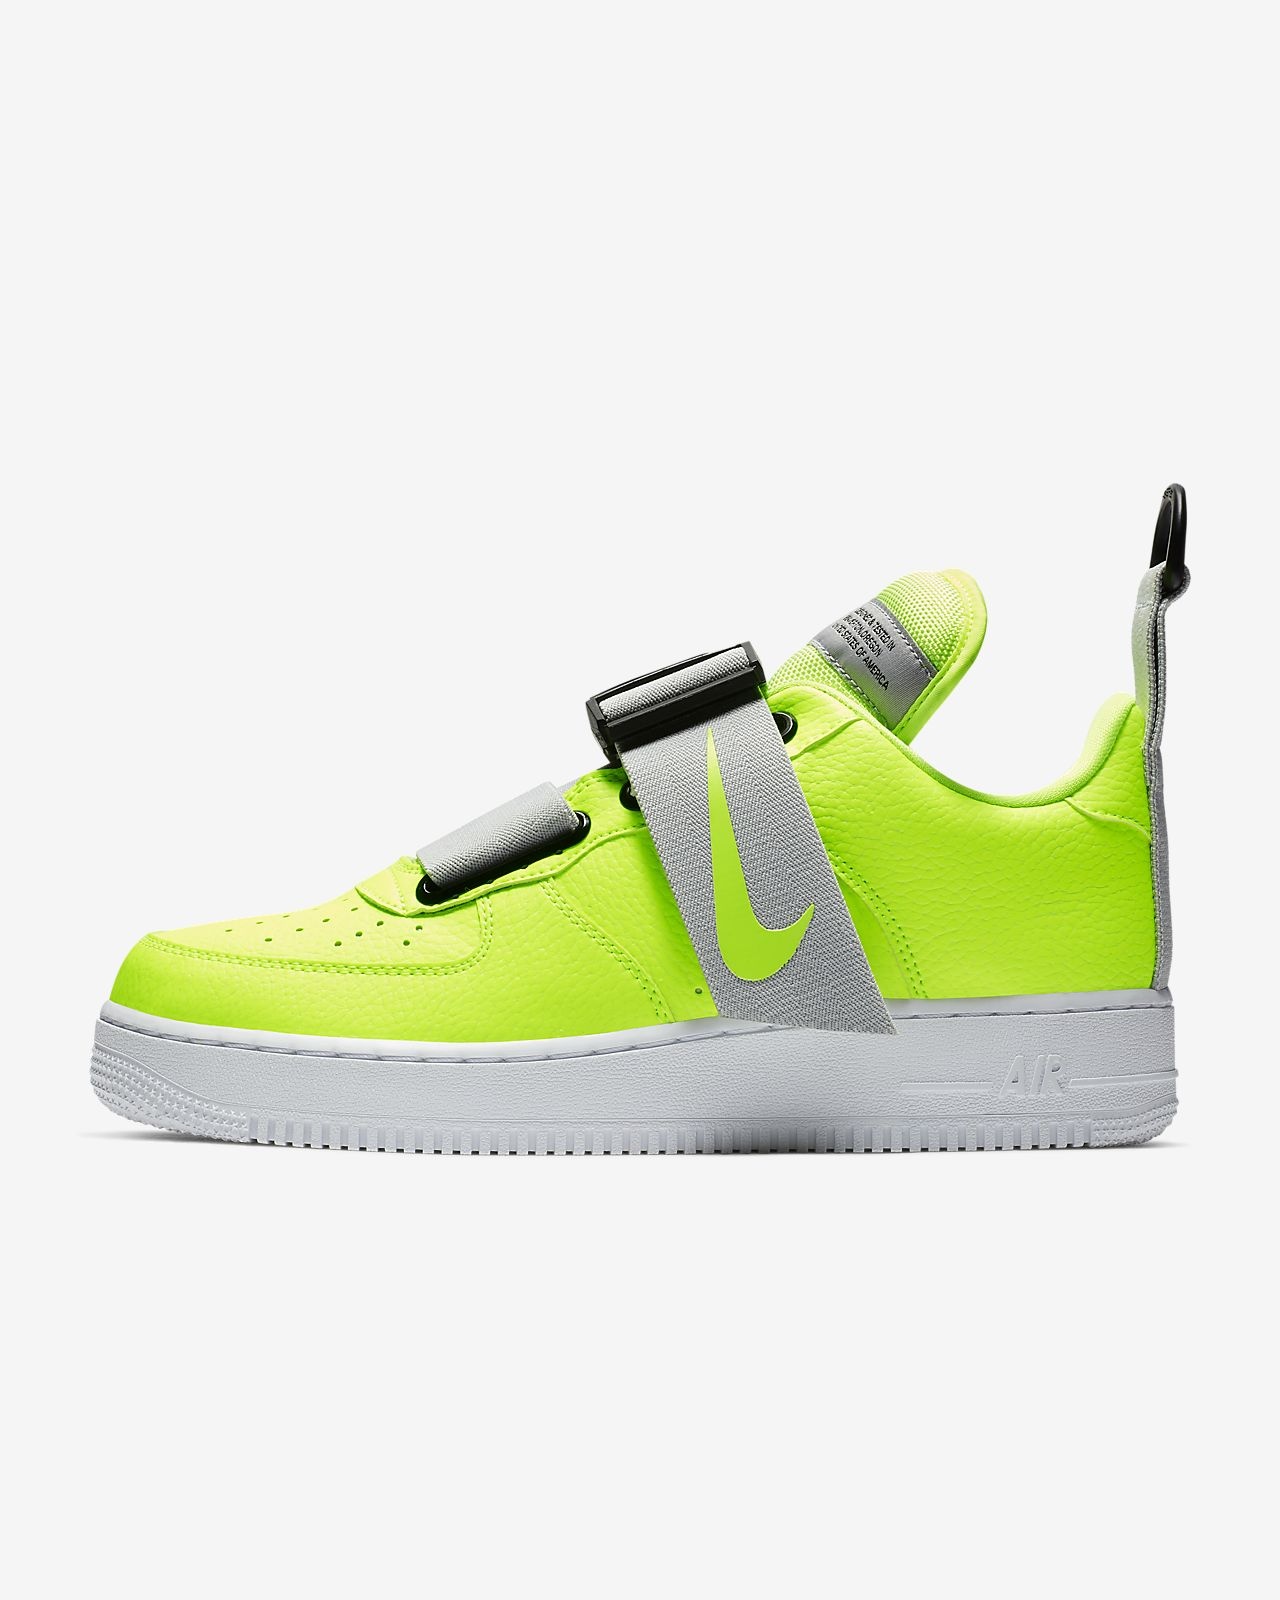 the latest 8c8dc 5c520 ... Chaussure Nike Air Force 1 Utility pour Homme